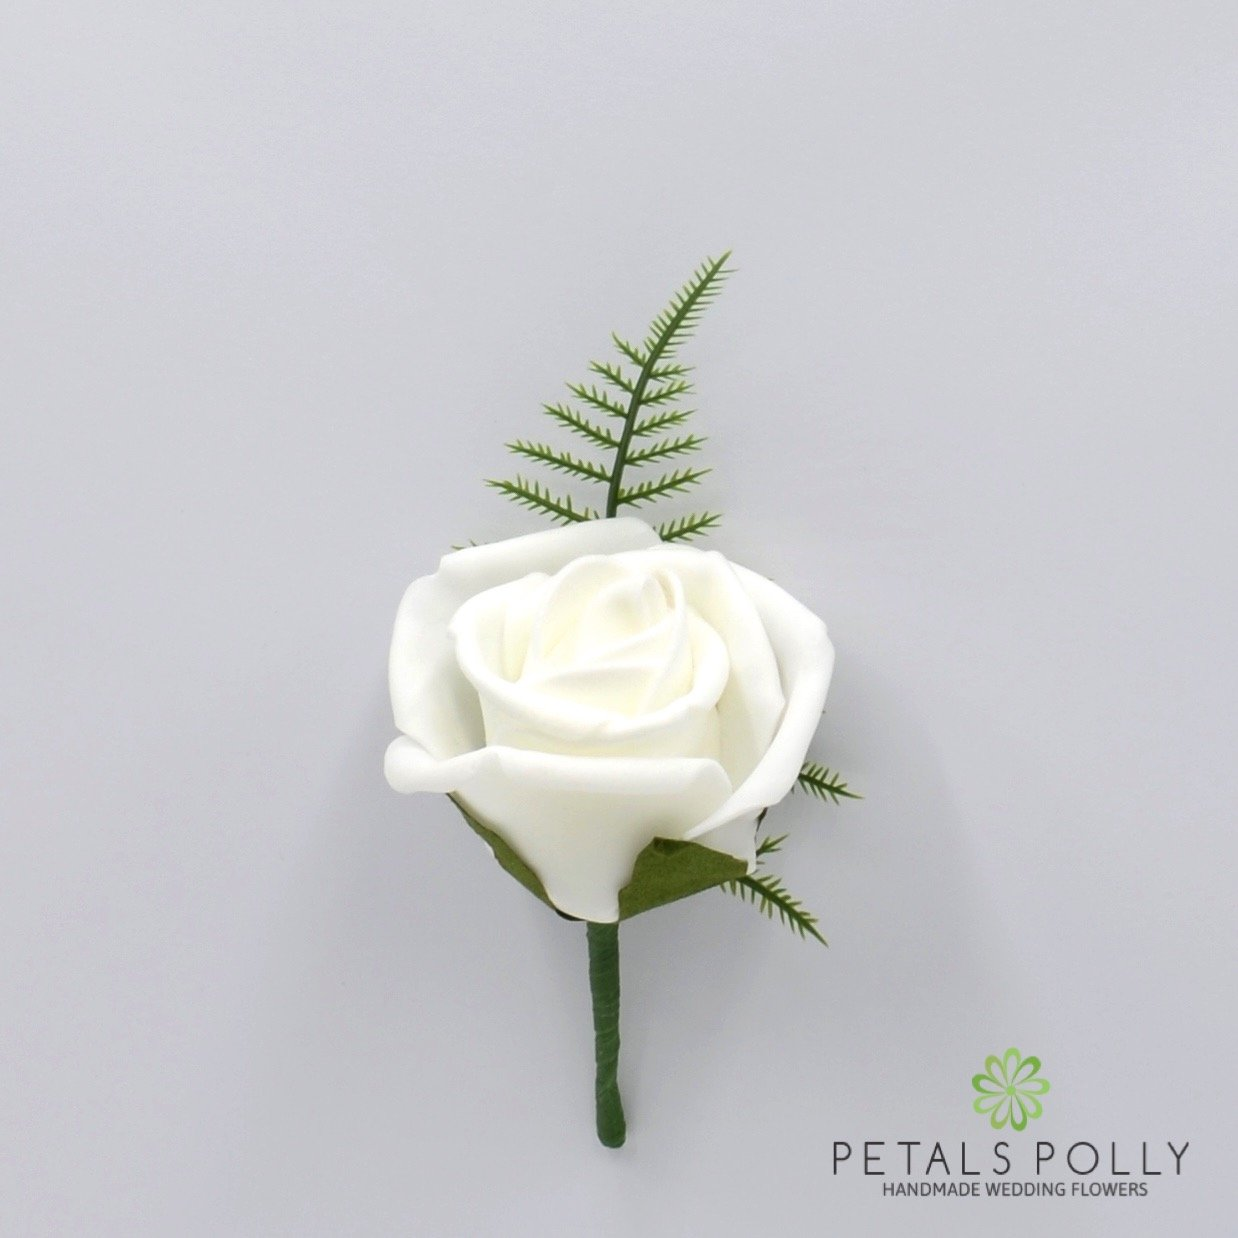 Artificial Wedding Flowers Hand-made by Petals Polly, FOAM ROSE BUTTONHOLE IN WHITE PETALS POLLY FLOWERS